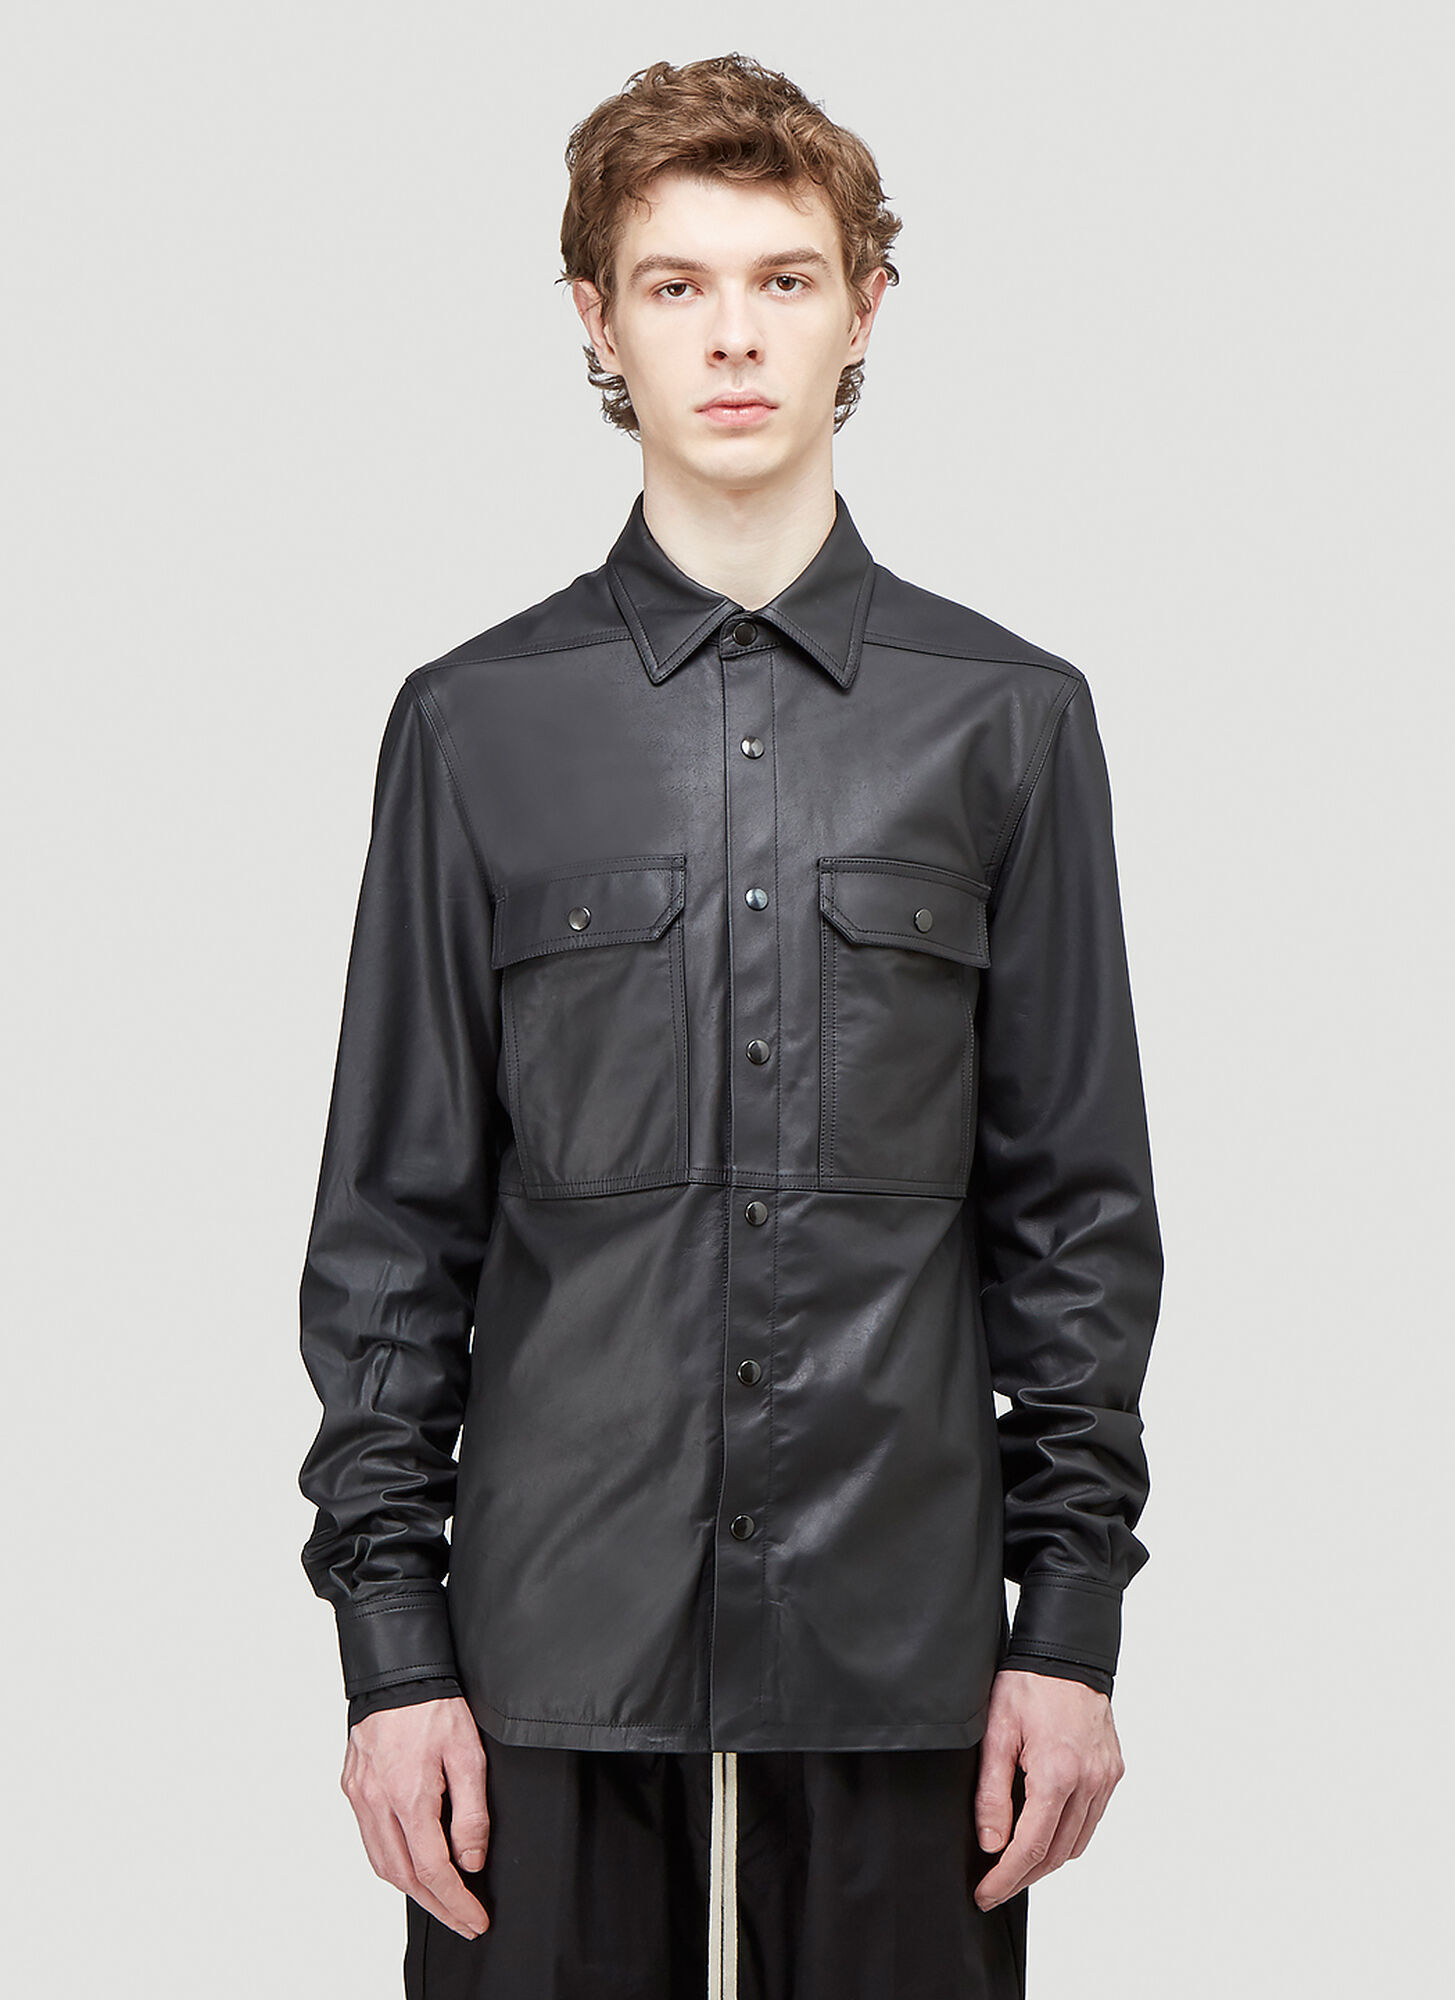 Outer Shirt in Black